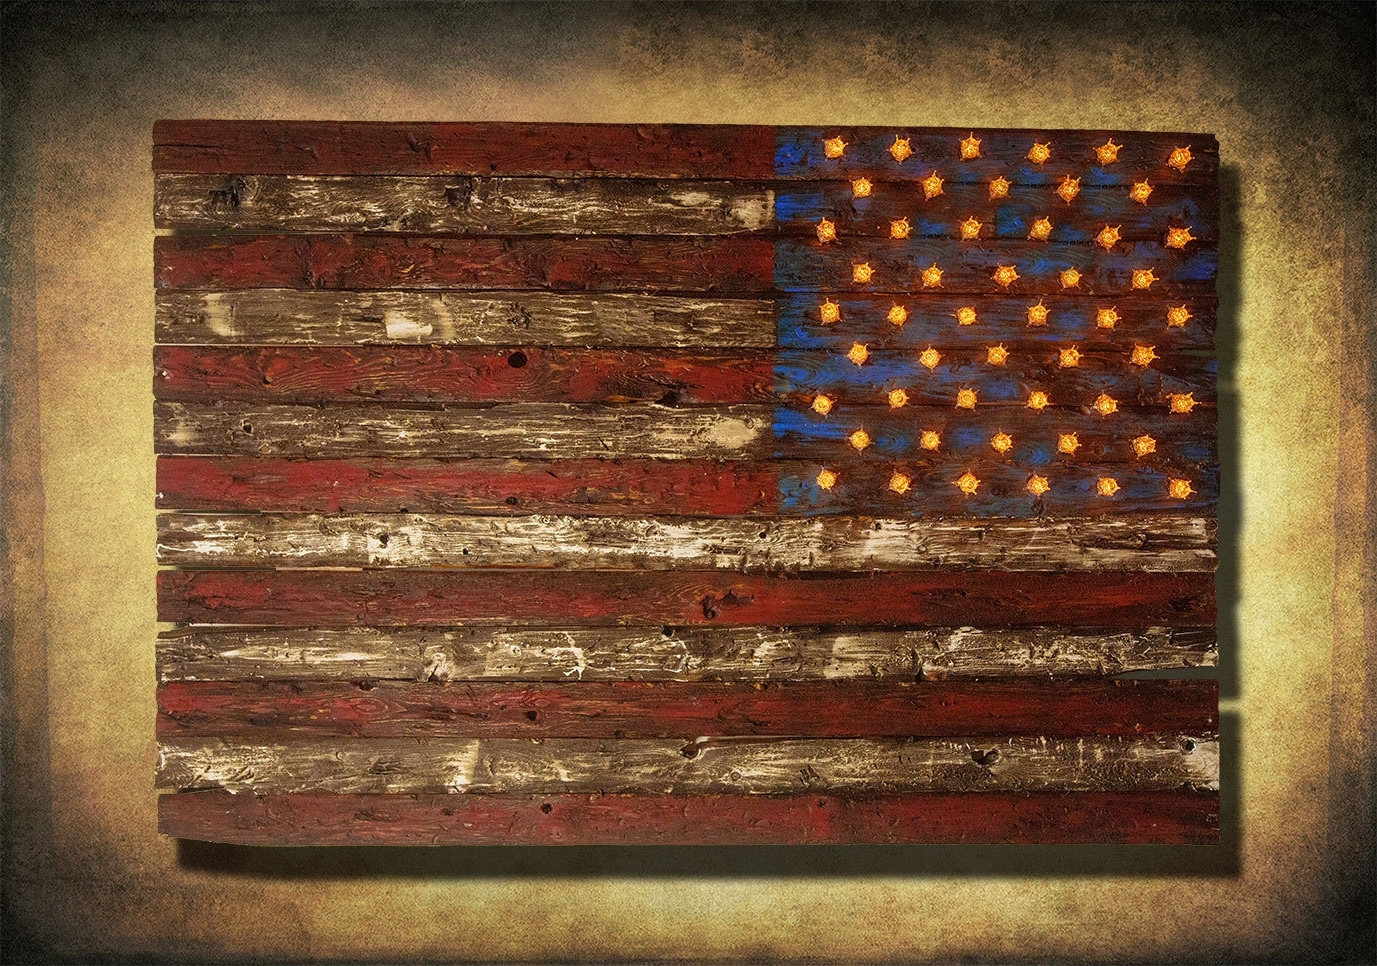 Vintage American Flag Wall Art Regarding Most Popular American Flag, Weathered Wood, Edison Bulb, 3D, Wooden, Vintage, Art (Gallery 1 of 20)